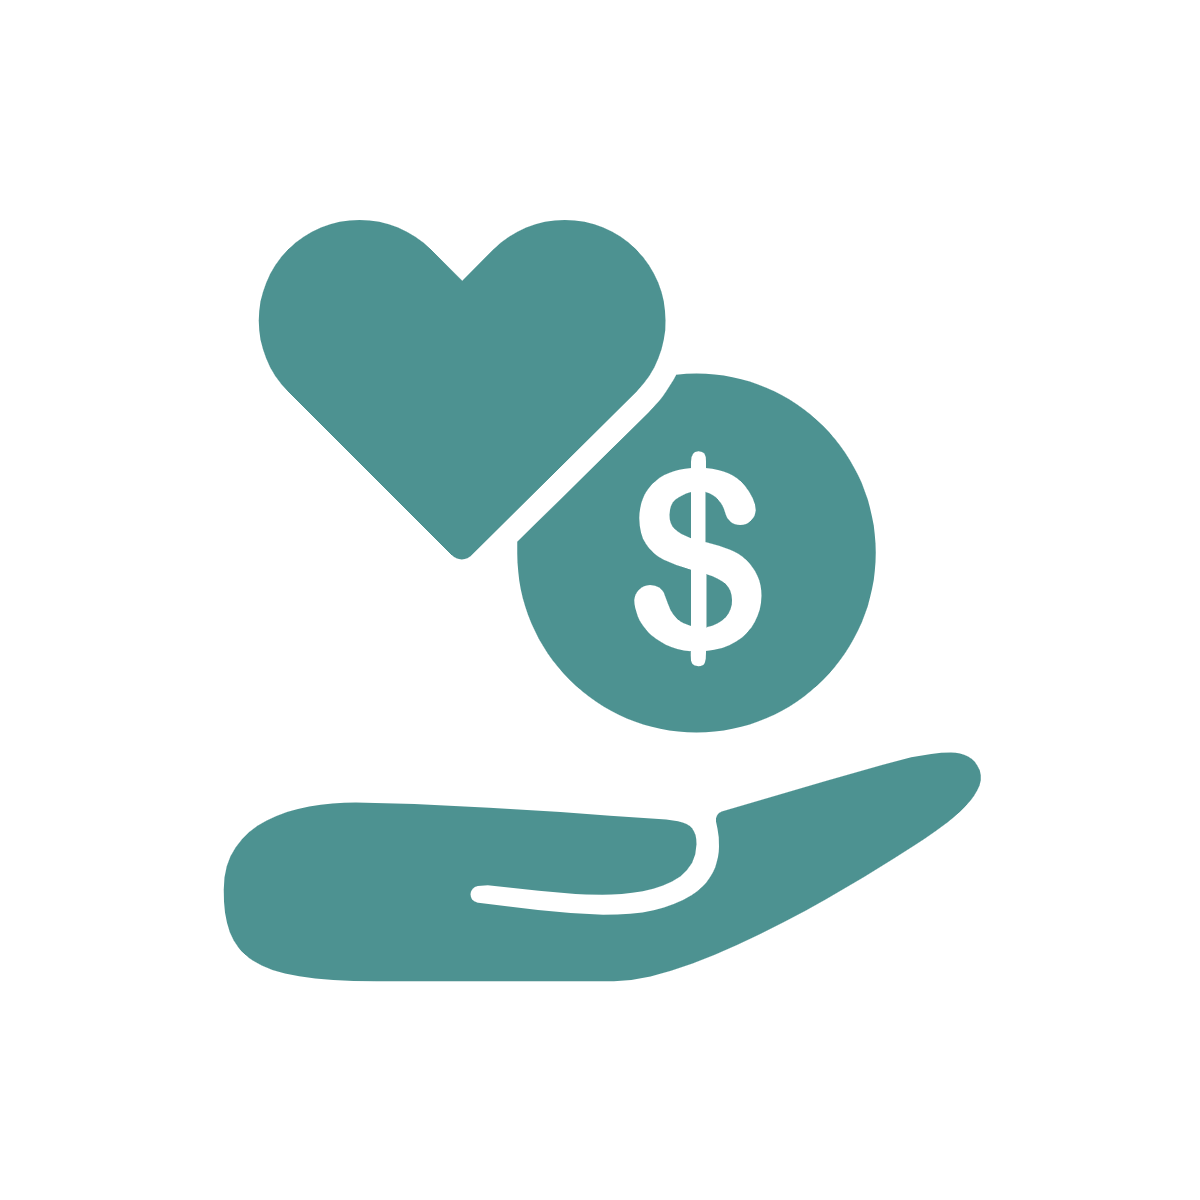 Donation icon with open hand, heart, and dollar sign